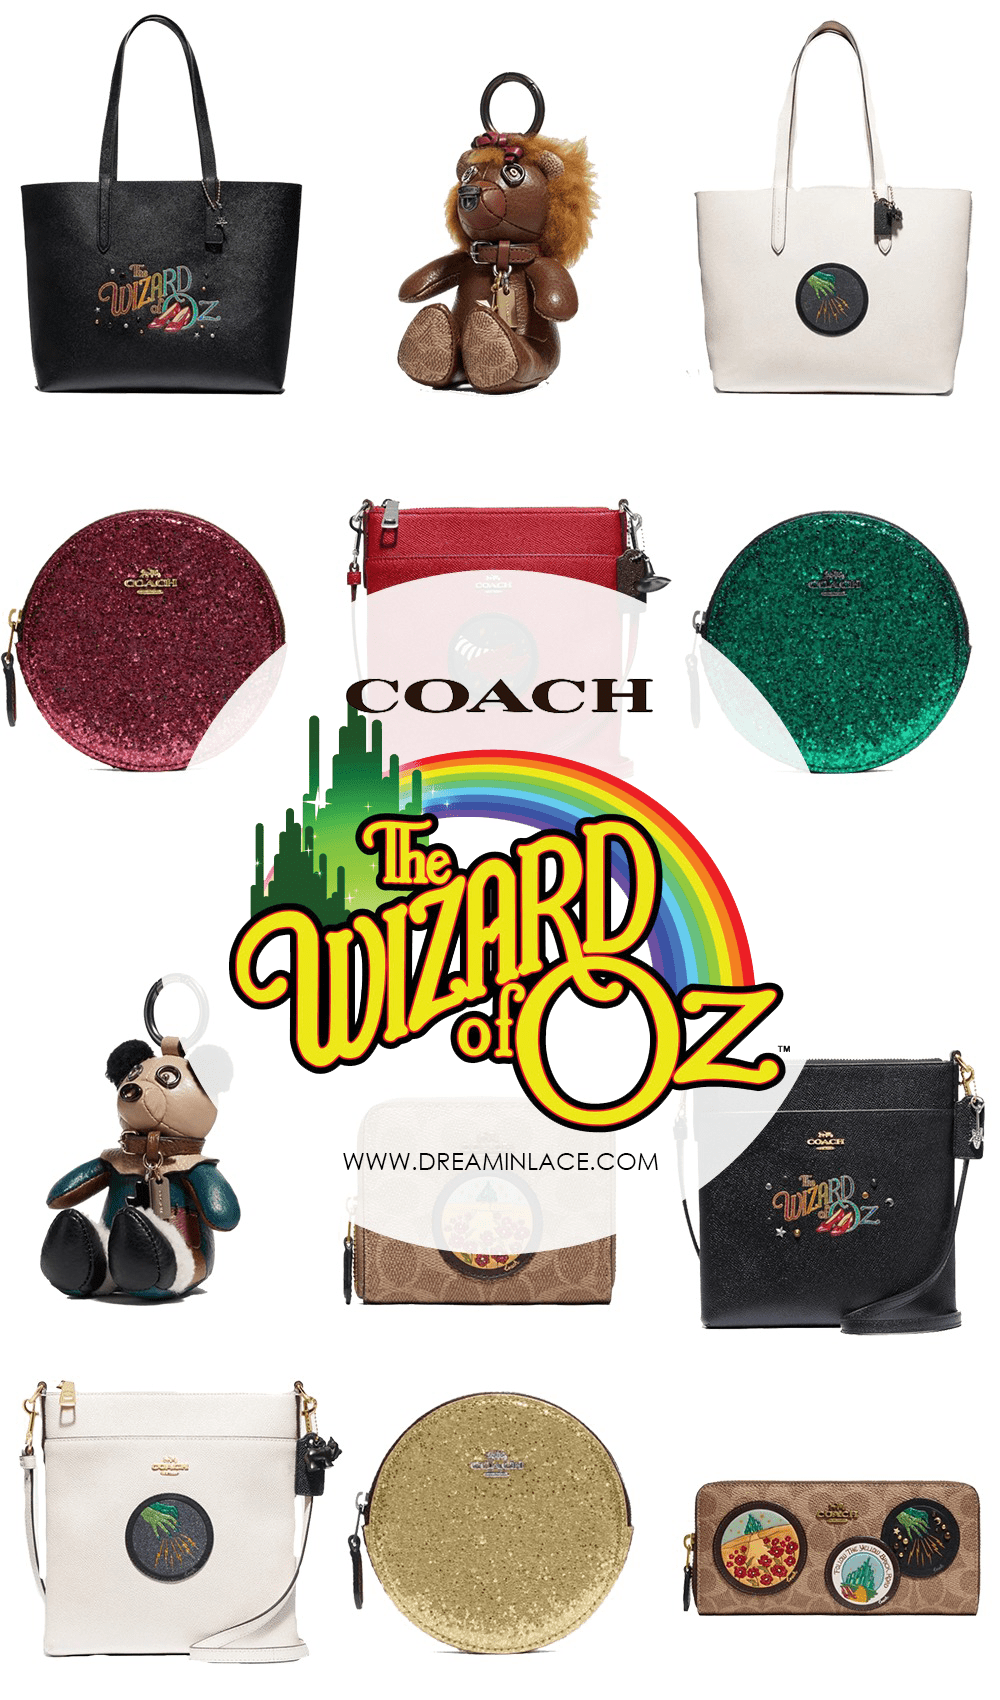 Coach Wizard Of Oz Collection I 2020